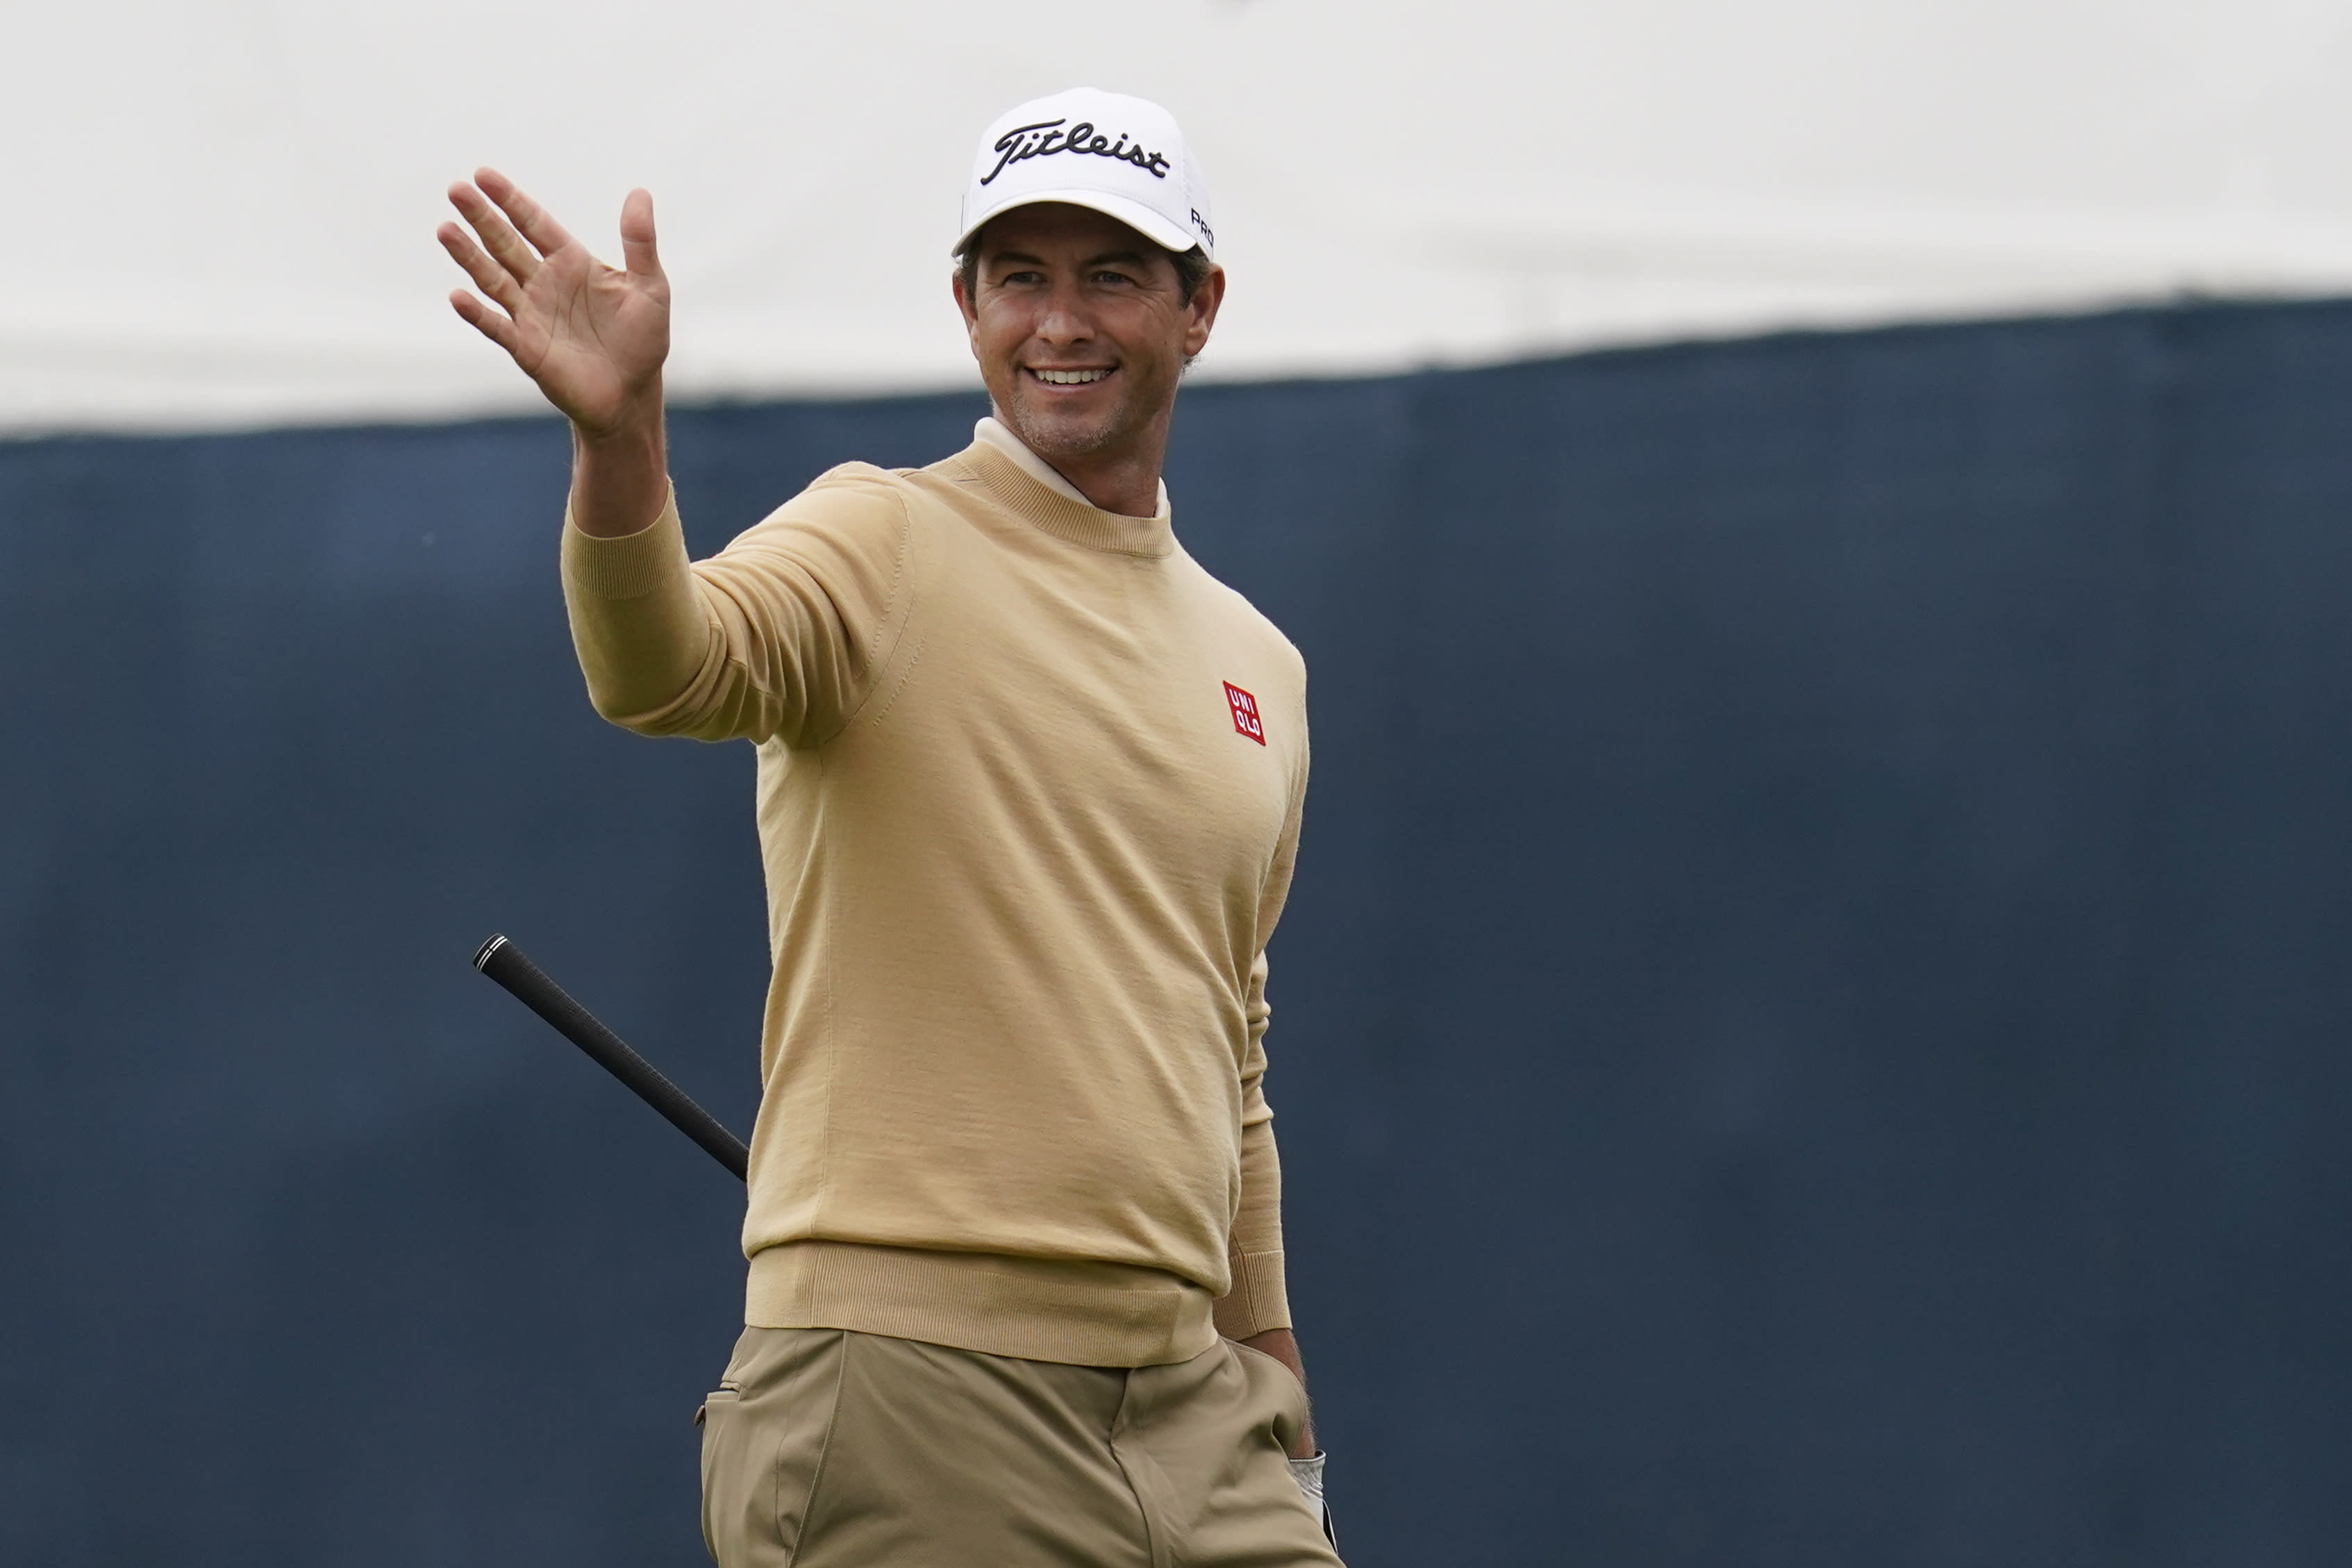 Adam Scott, of Australia, gestures toward the 15th fairway during practice for the PGA Championship golf tournament at TPC Harding Park in San Francisco, Tuesday, Aug. 4, 2020. (AP Photo/Jeff Chiu)